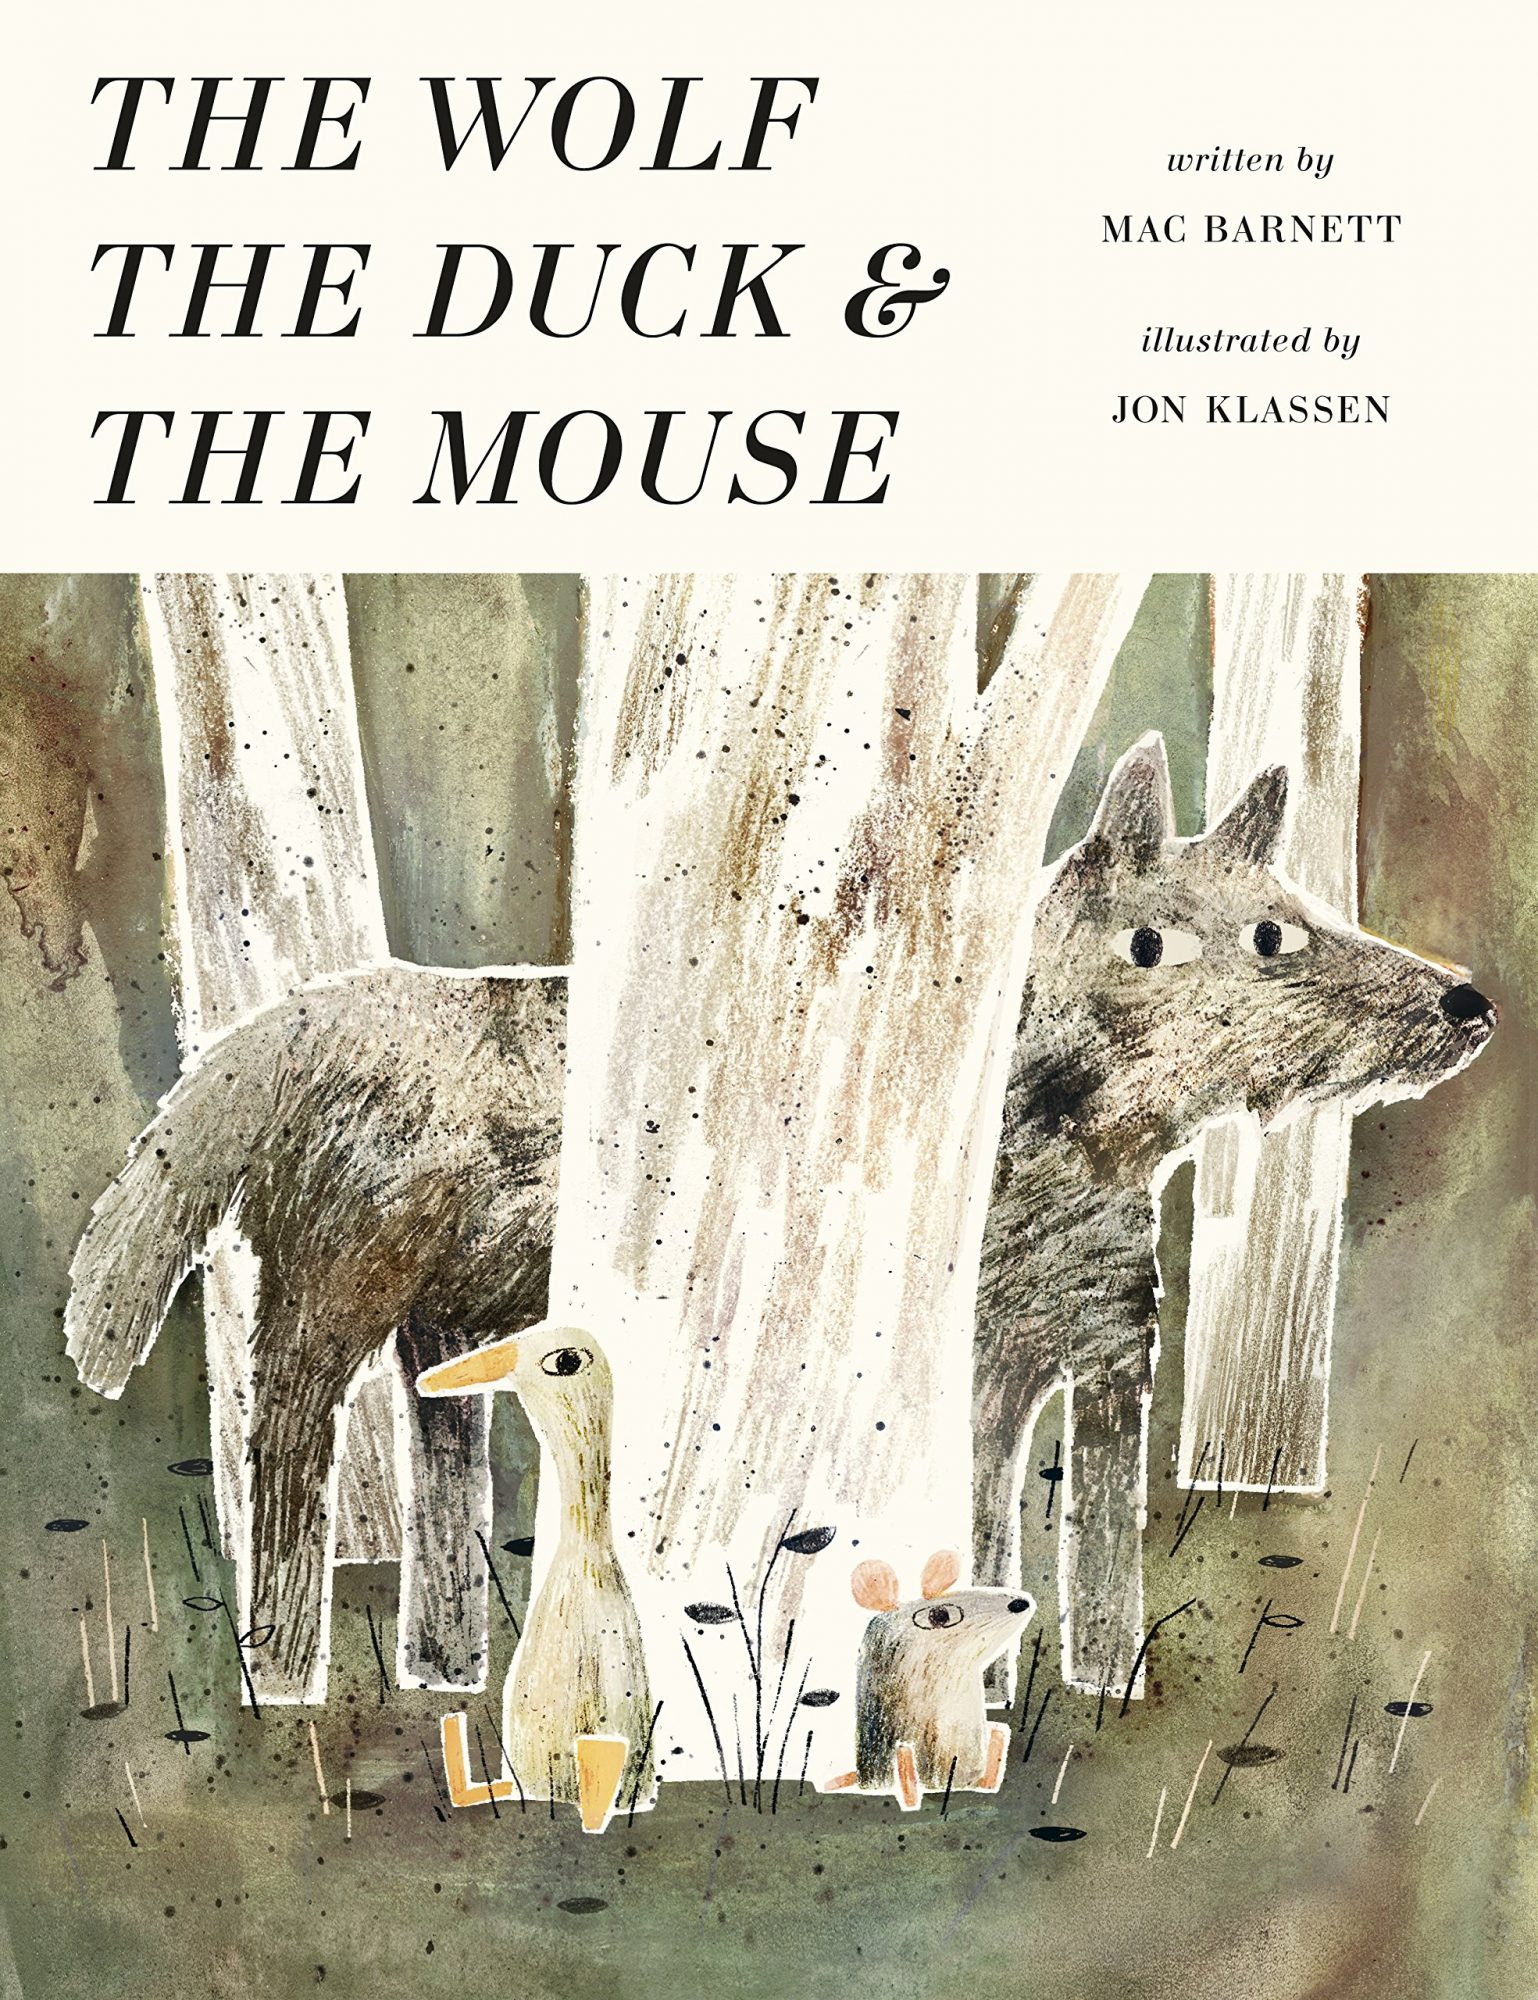 The Wolf, the Duck & the Mouse by Mac Barnett, Illustrated by Jon Klassen